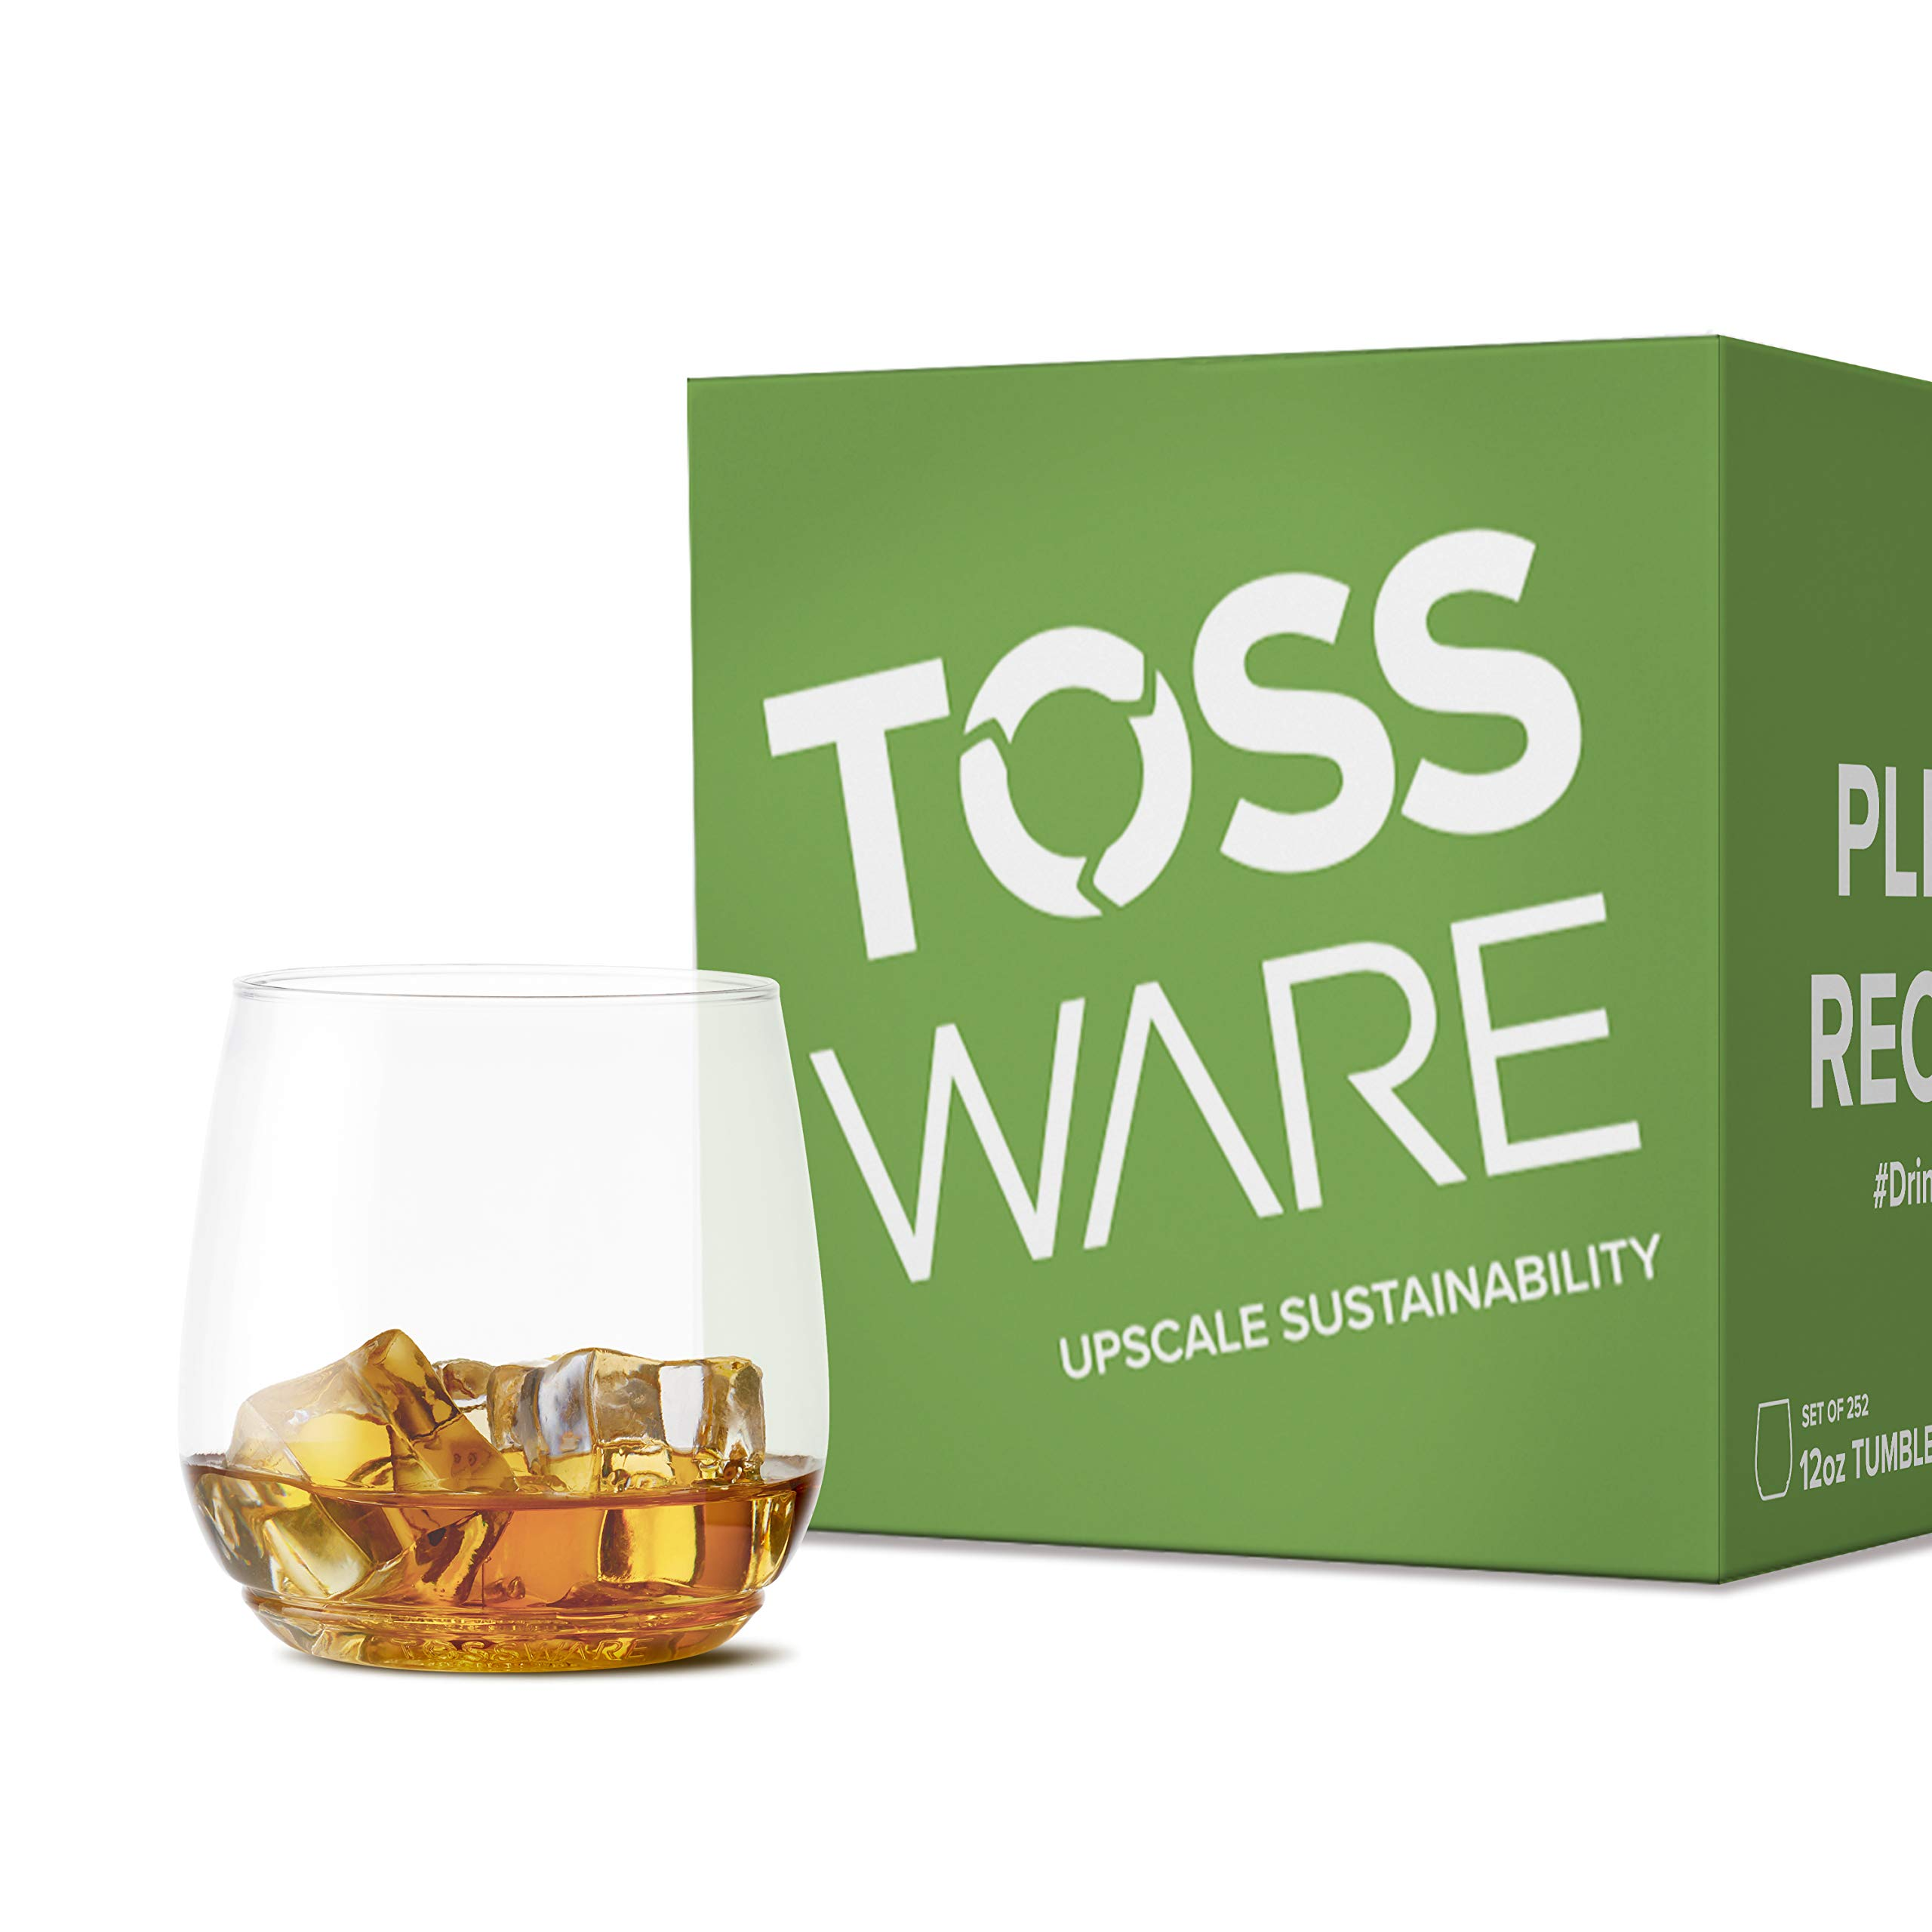 TOSSWARE 12oz Tumbler Jr - Set of 252 recyclable cocktail and whiskey plastic cup - stemless, shatterproof and BPA-free, Clear Glass